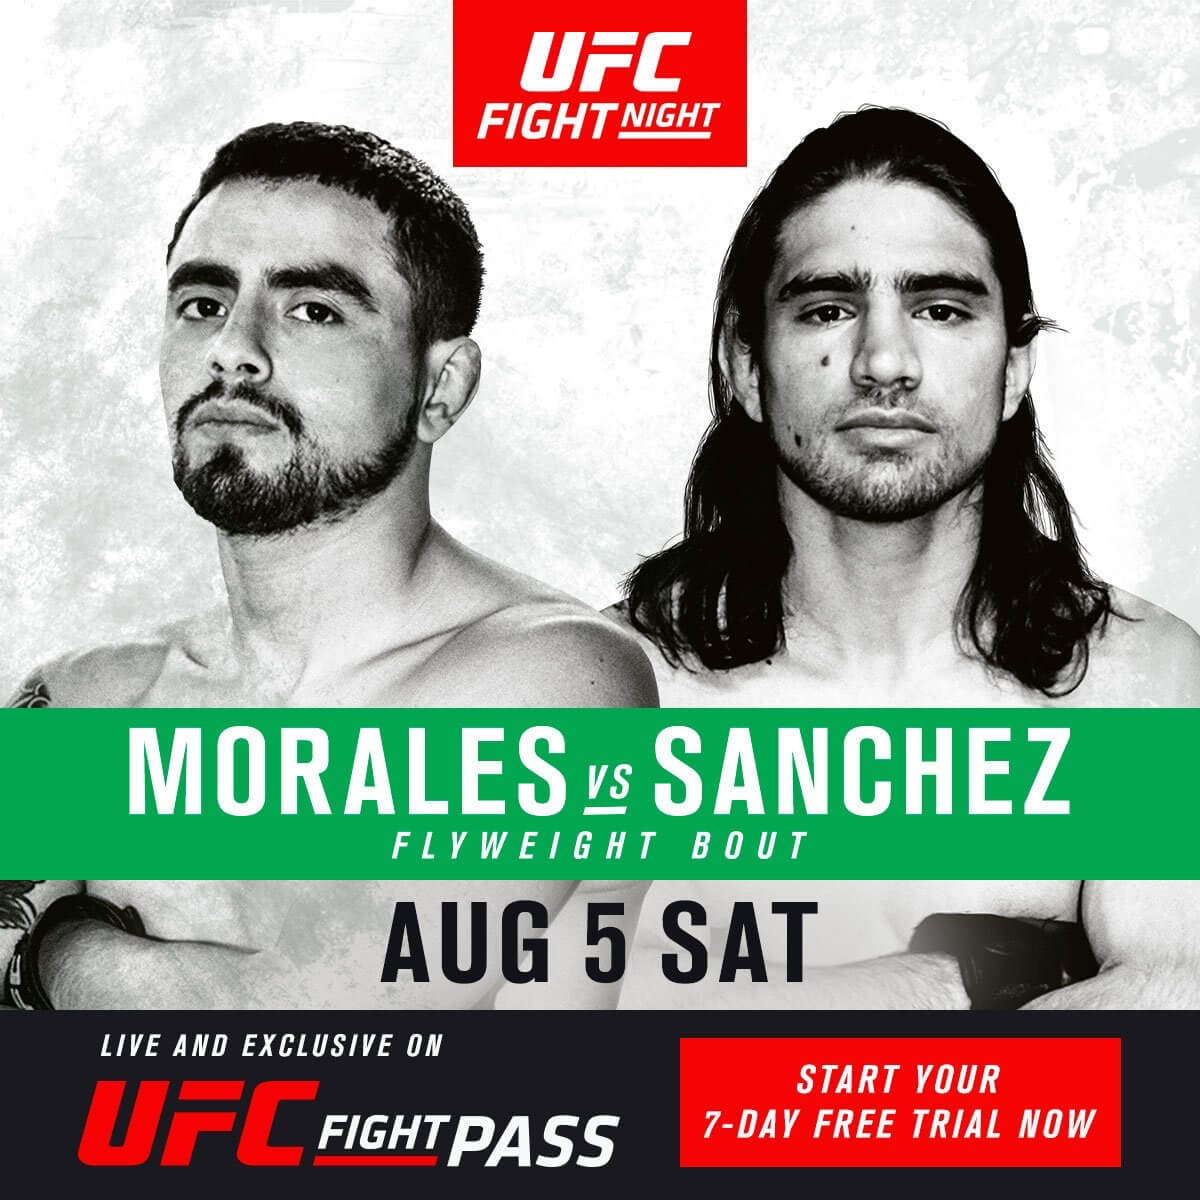 Ufc Mexico fight pass